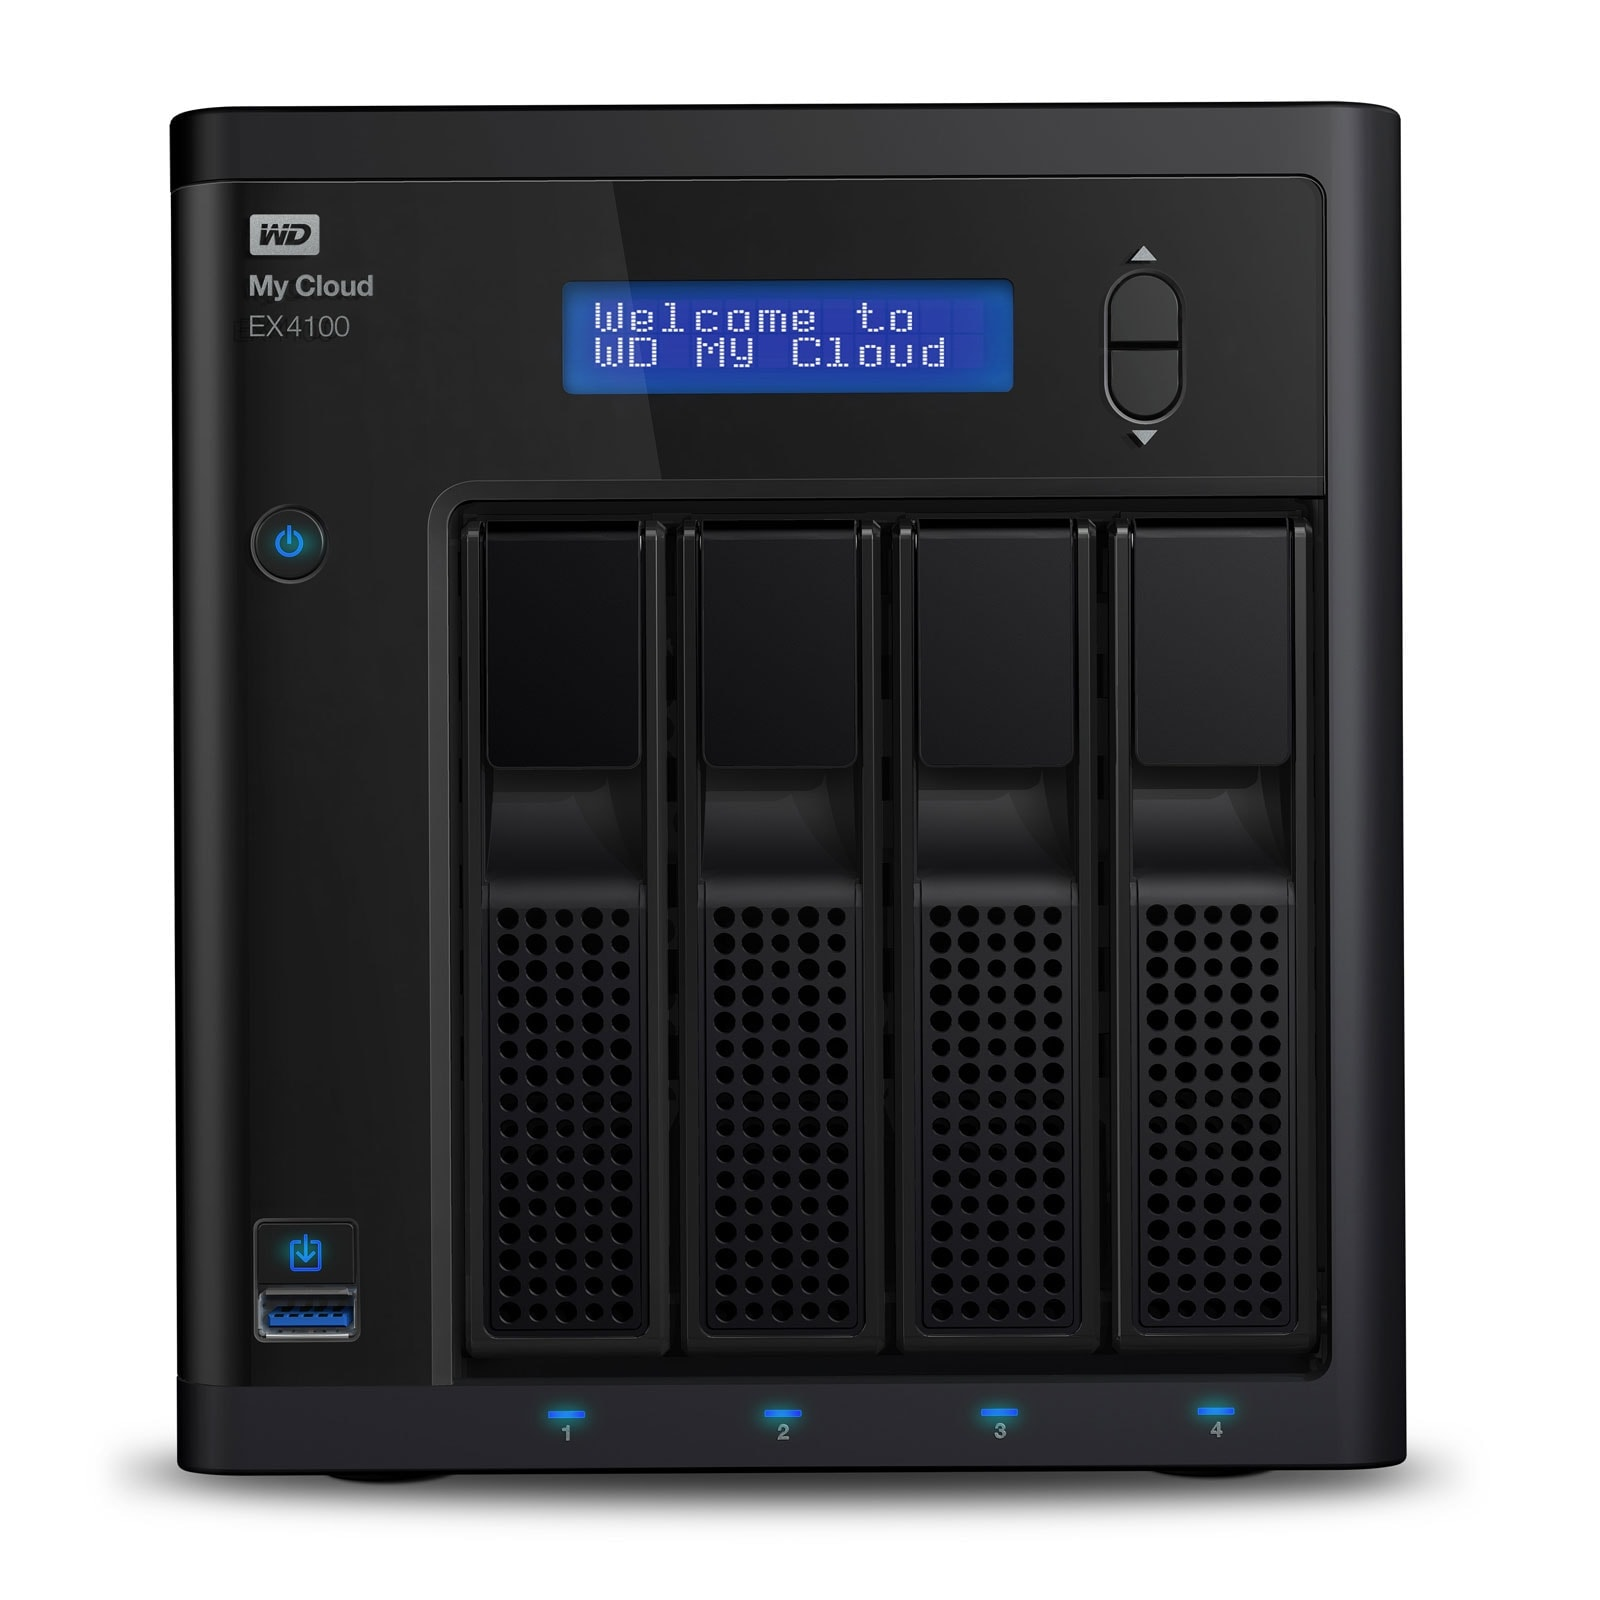 WD My cloud EX4100 sans disques - 4 HDD - Serveur NAS WD - 0